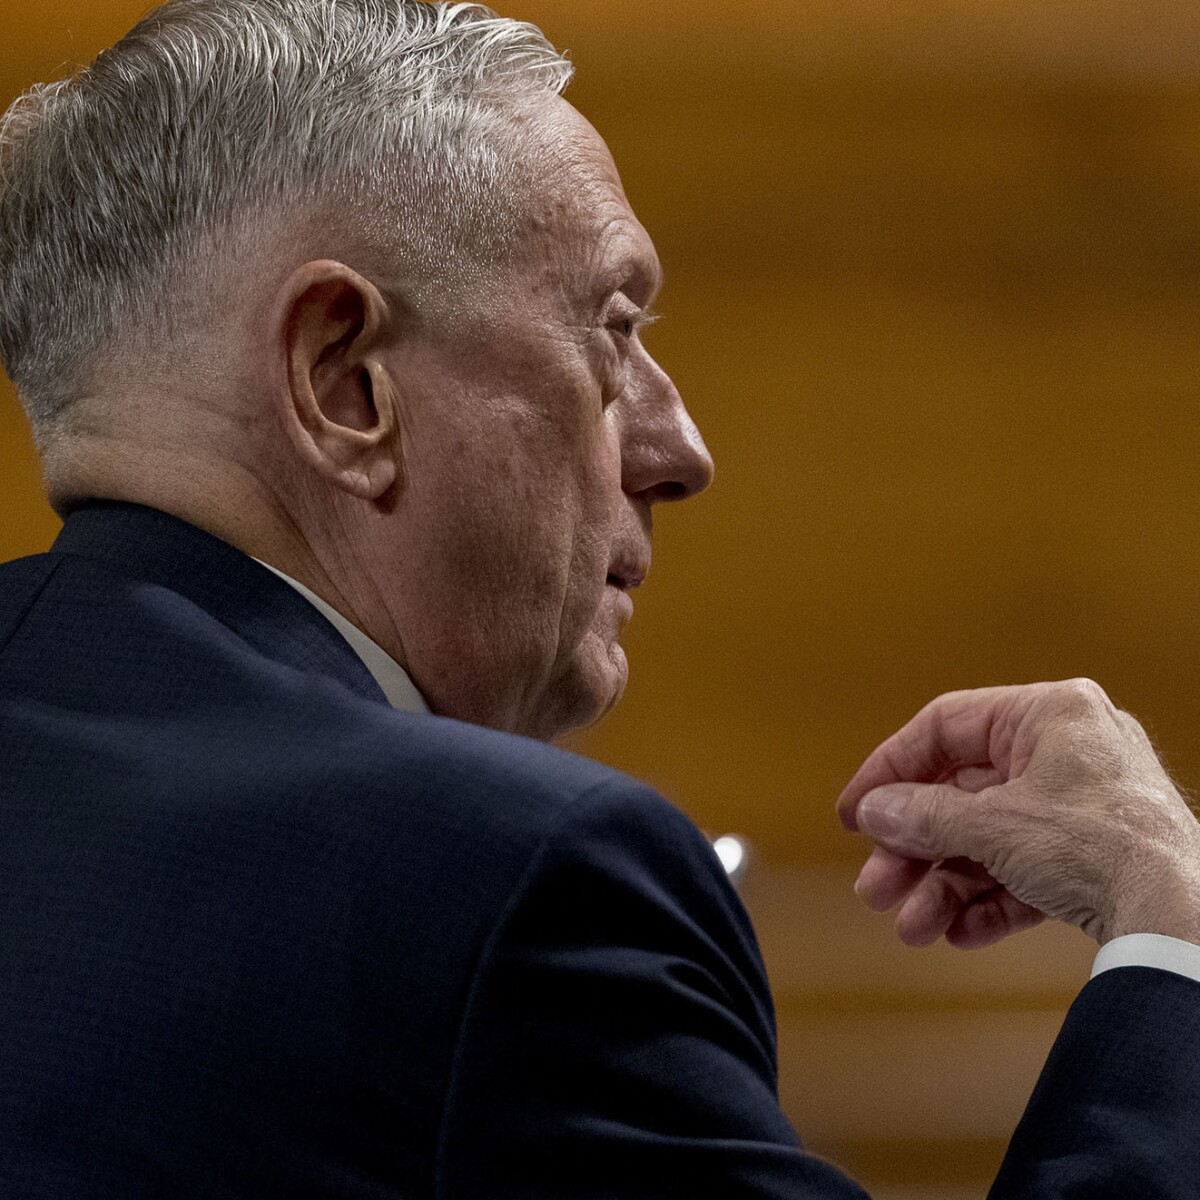 Army chief: Jim Mattis 'very clearly' tasked soldiers to be ready for war with North Korea